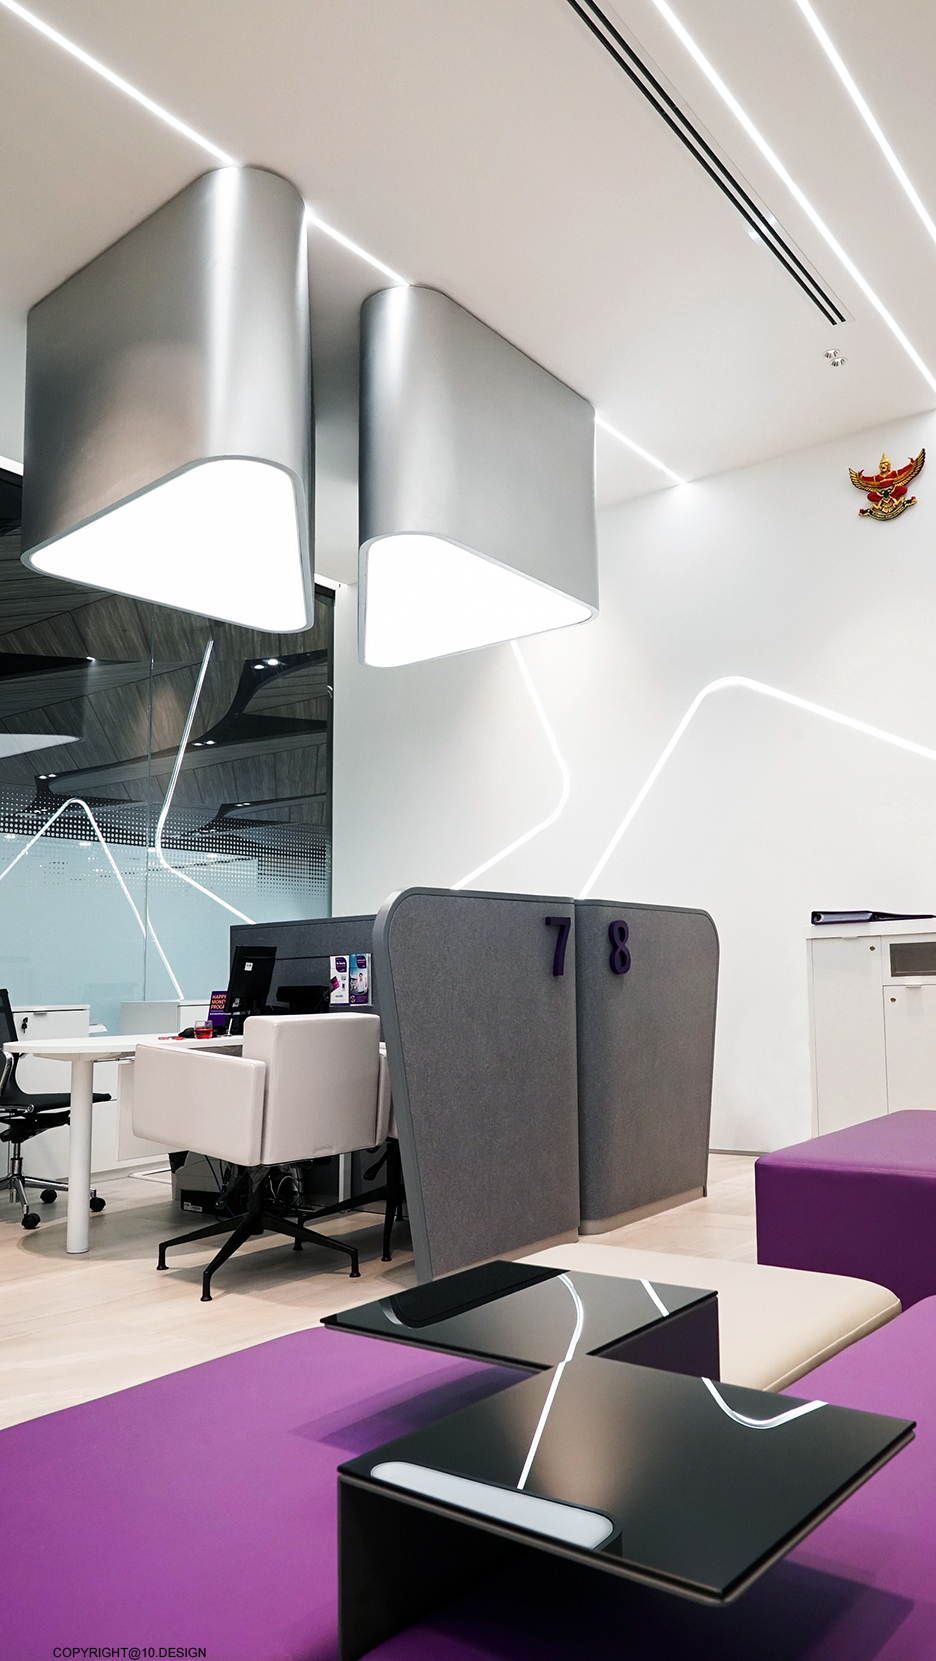 10DESIGN SCB BANKING RETAIL BRANCH INTERIOR DESIGN THAILAND 07